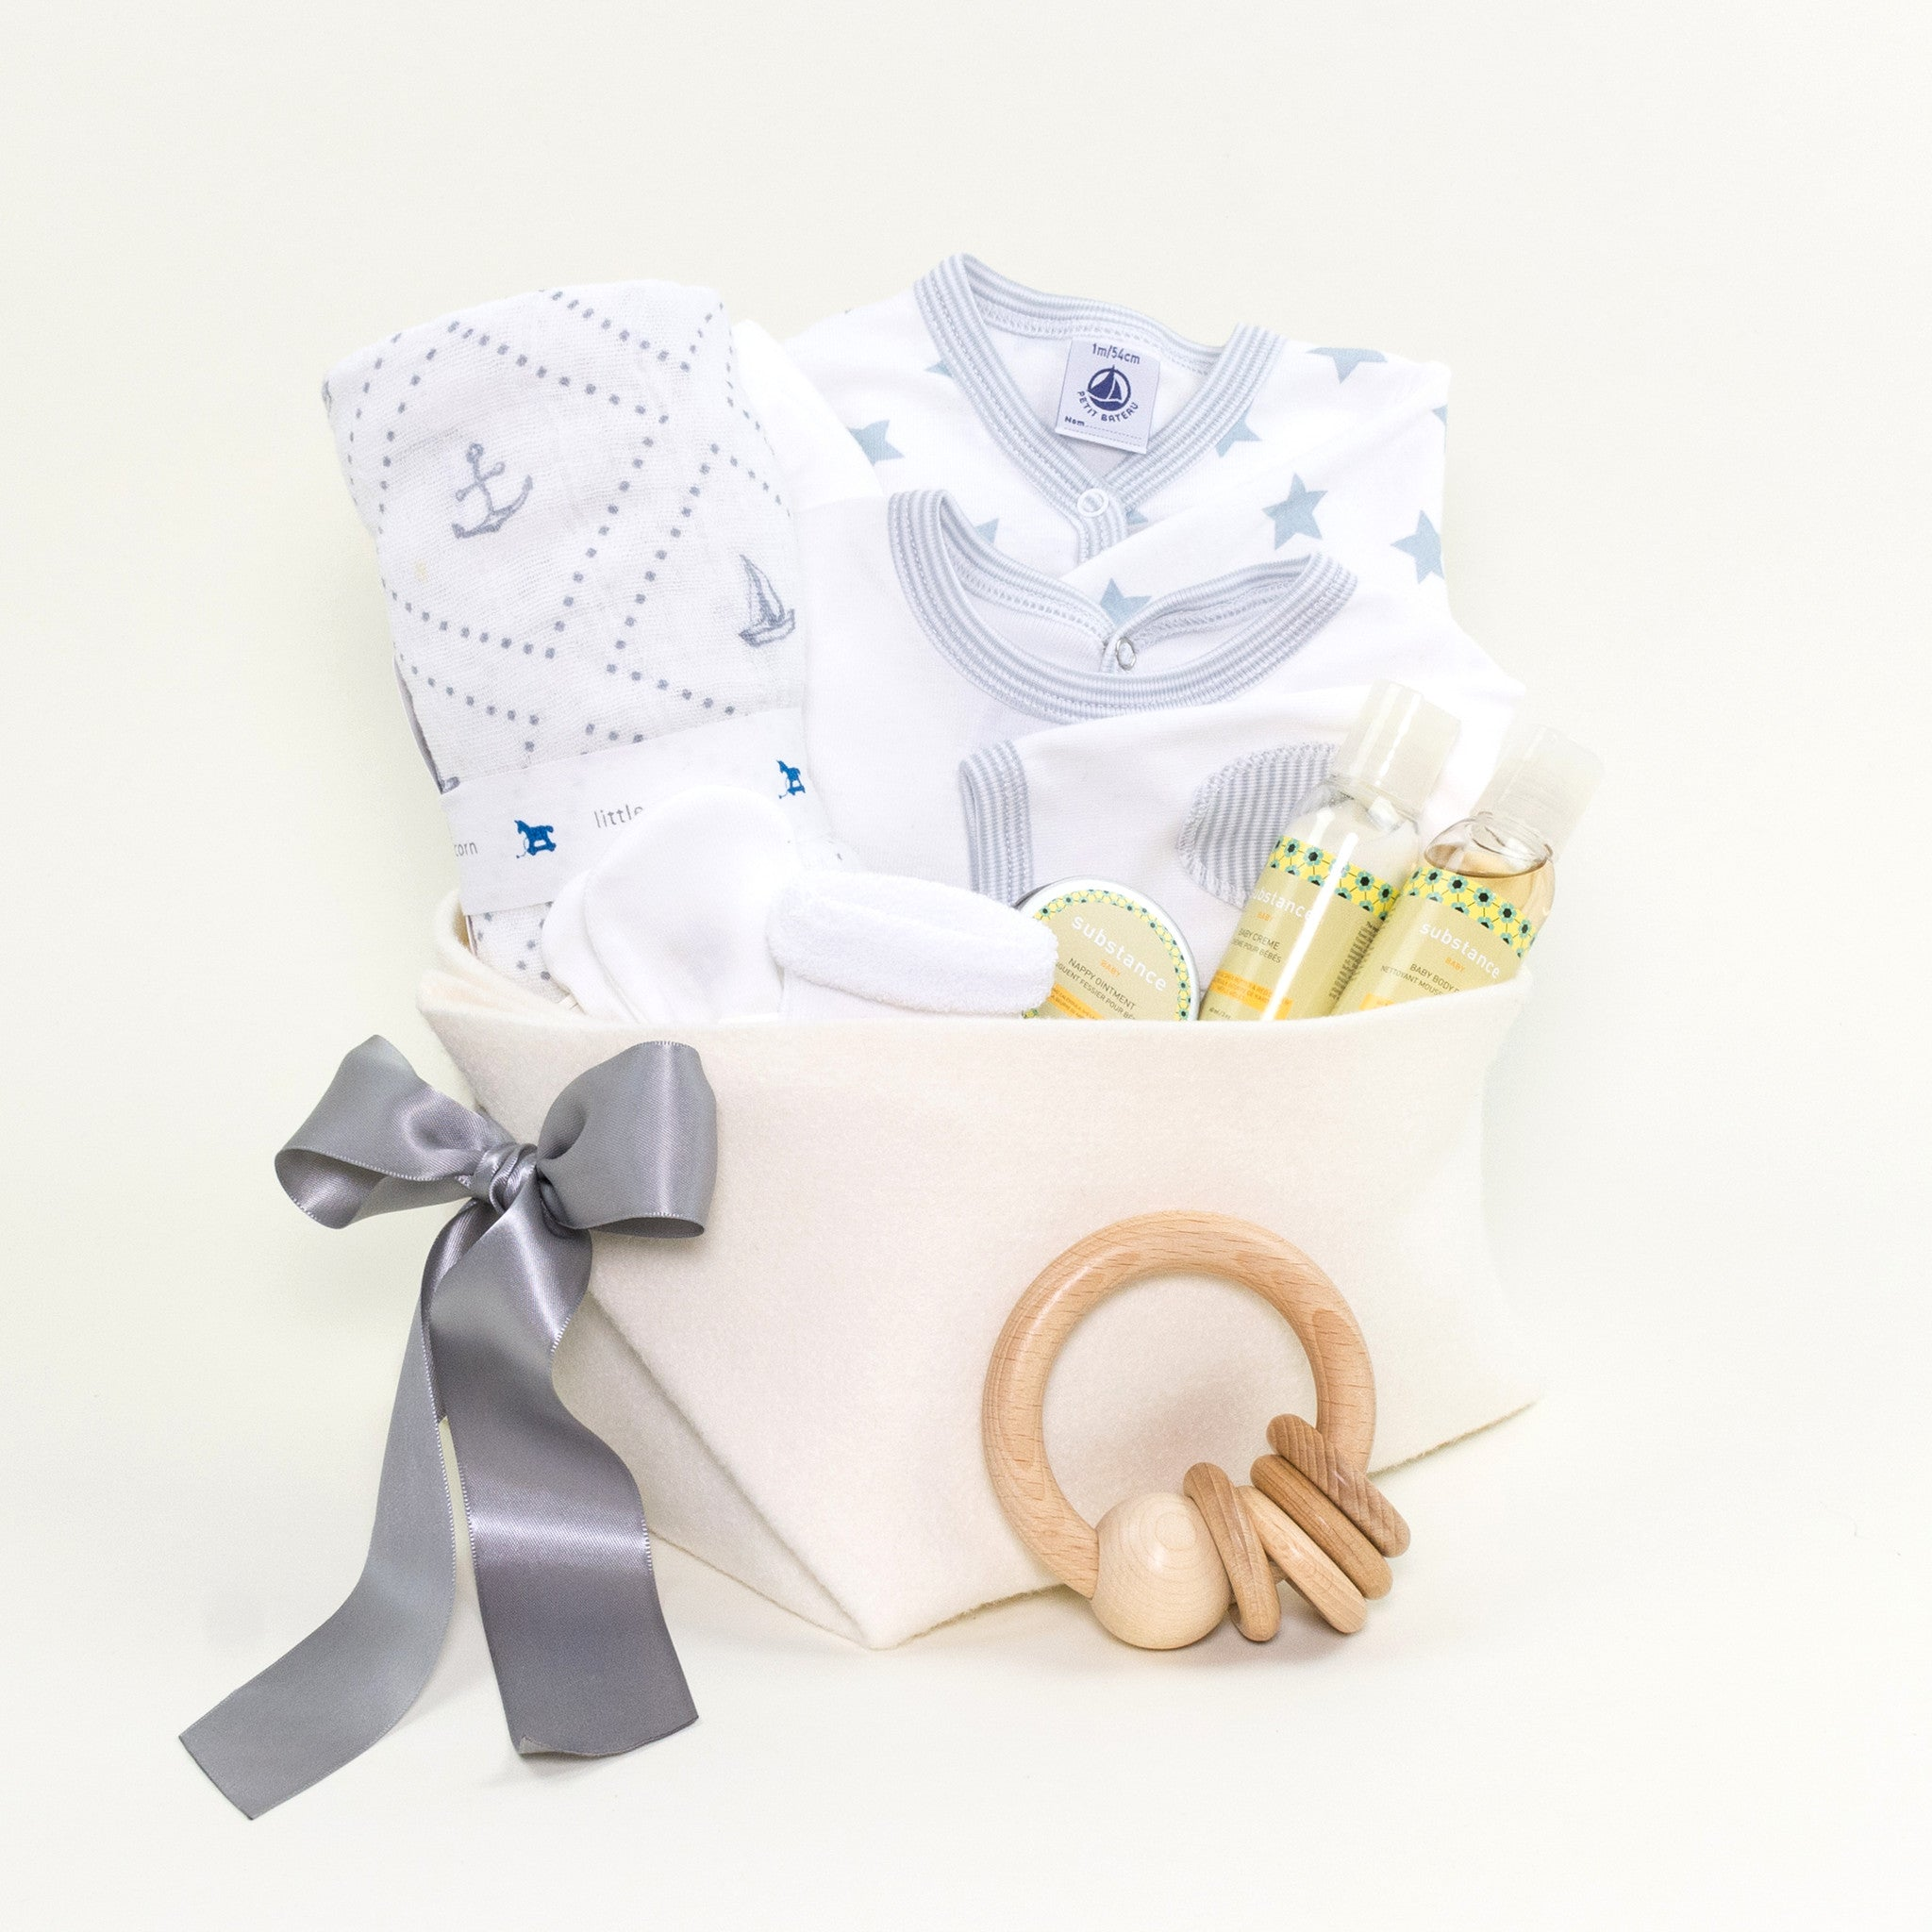 Luxury Baby Gift Basket featuring Matter Company Baby Products